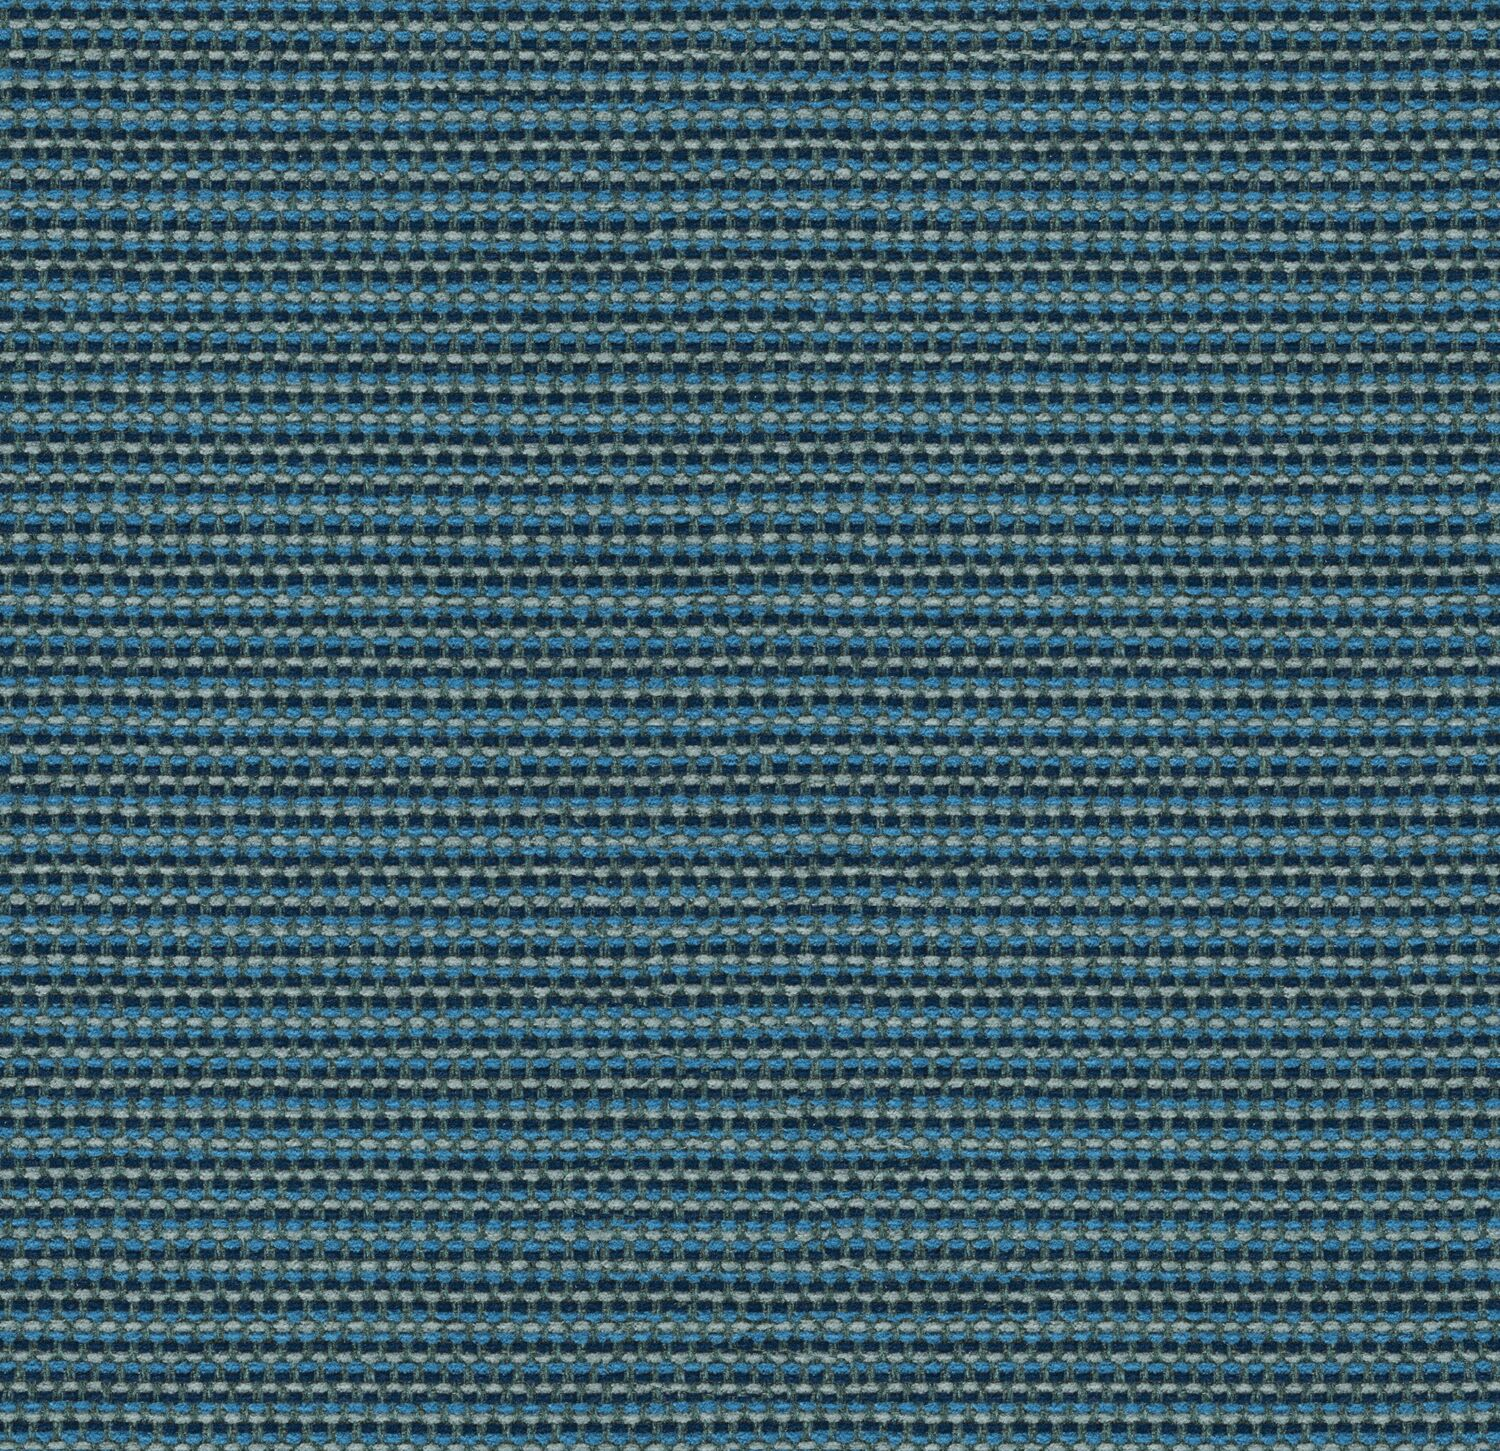 Megapixel - Ripple - 4097 - 09 Tileable Swatches